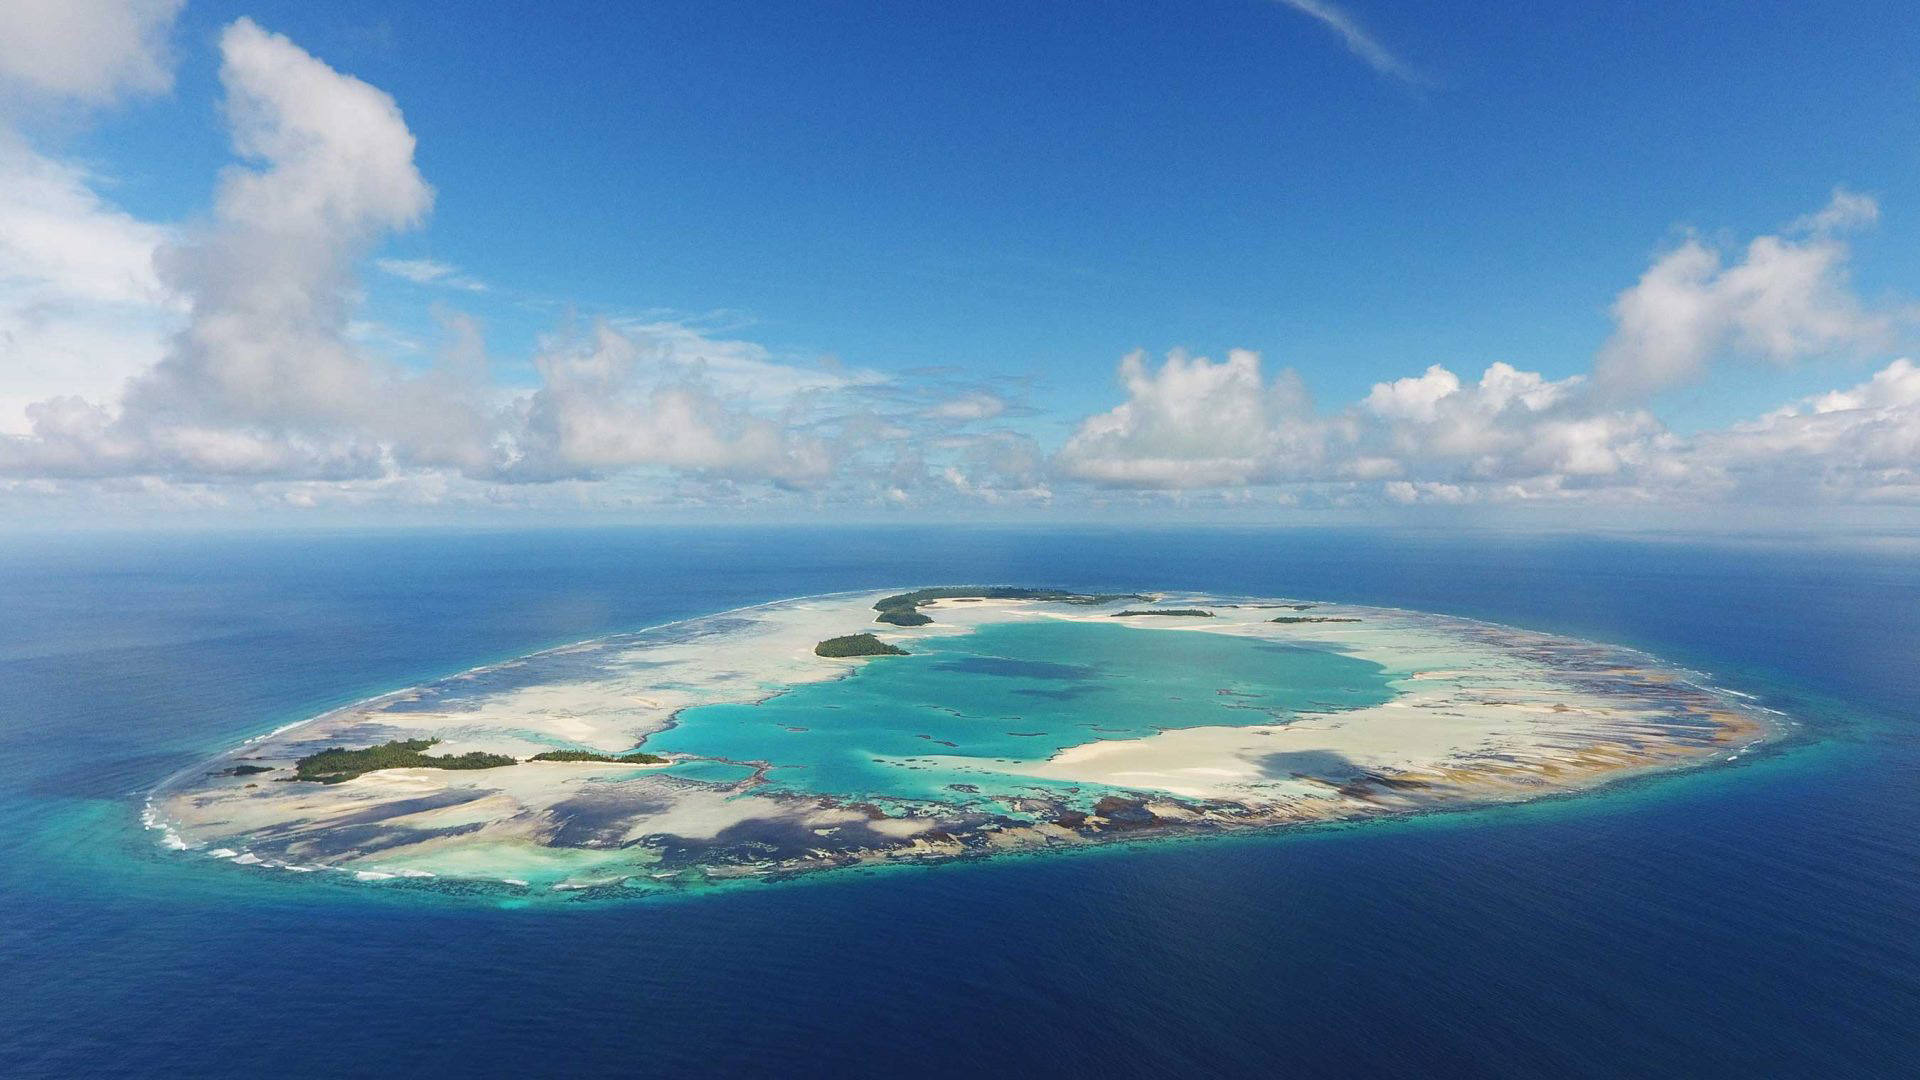 St Joseph Atoll with the flats exposed at low tide Photo by Michael Scholl |© Save Our Seas Foundation